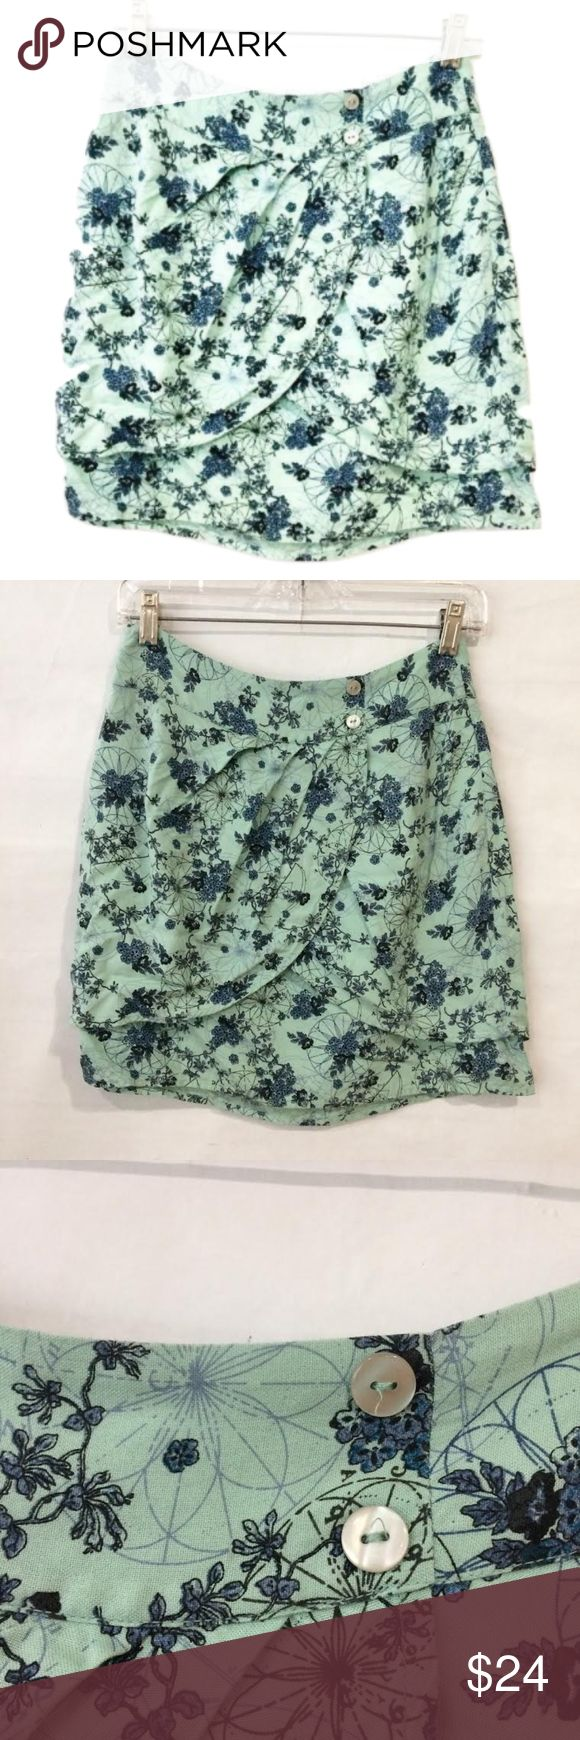 UO Kimchi Blue Tulip Floral Skirt Mini skirt with a light green-blue floral pattern, and a tulip hem detail at the front. Approximately 16 inches in length and size 4. Two buttons at the front, decorative. From Urban Outfitters. In great condition. Smoke free home and fast shipping. Urban Outfitters Skirts Mini